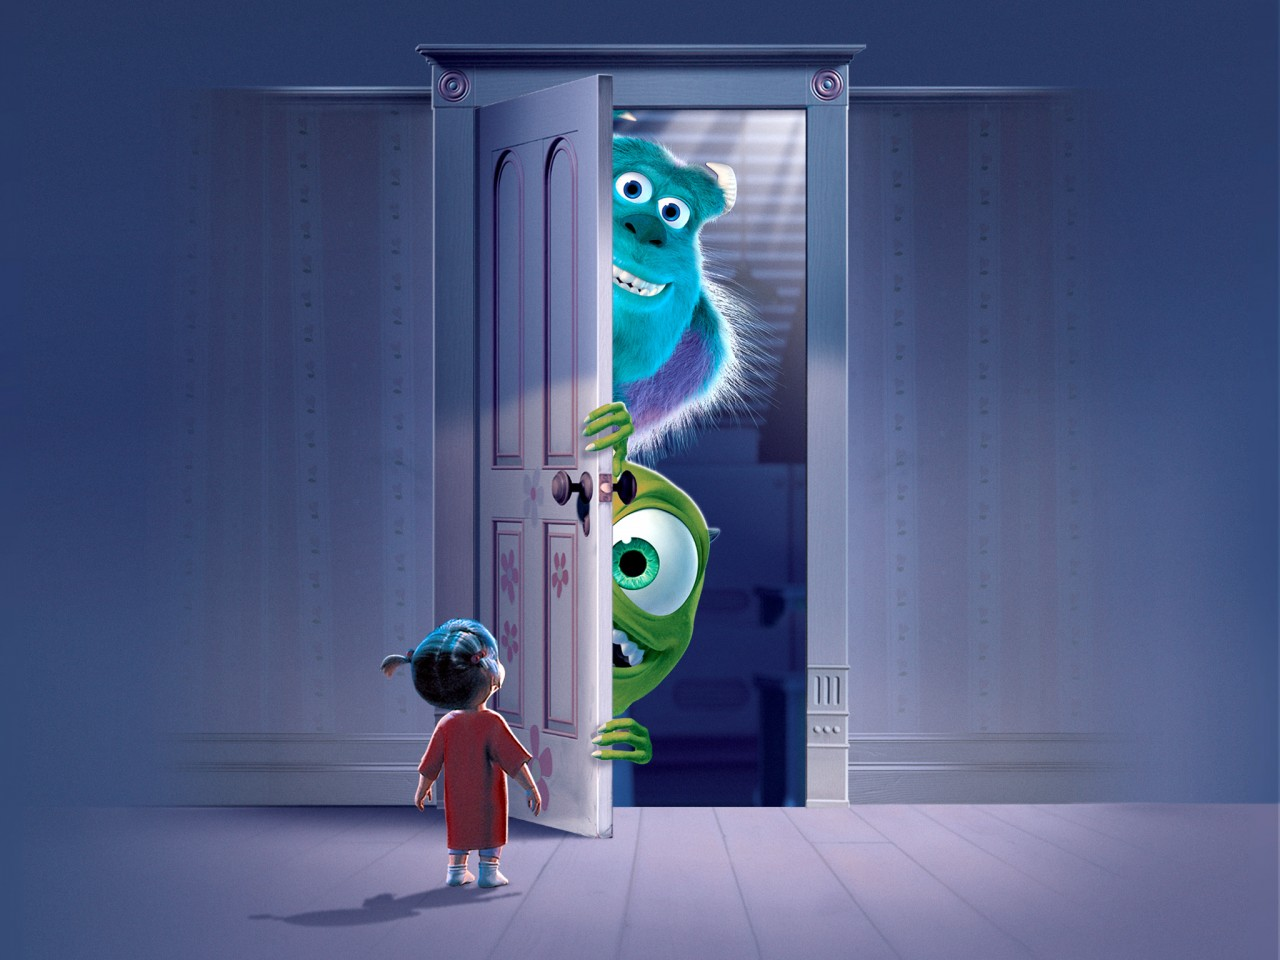 Wallpaper Monster Inc 3d Monsters Inc Movie Wallpapers Hd Wallpapers Id 13795